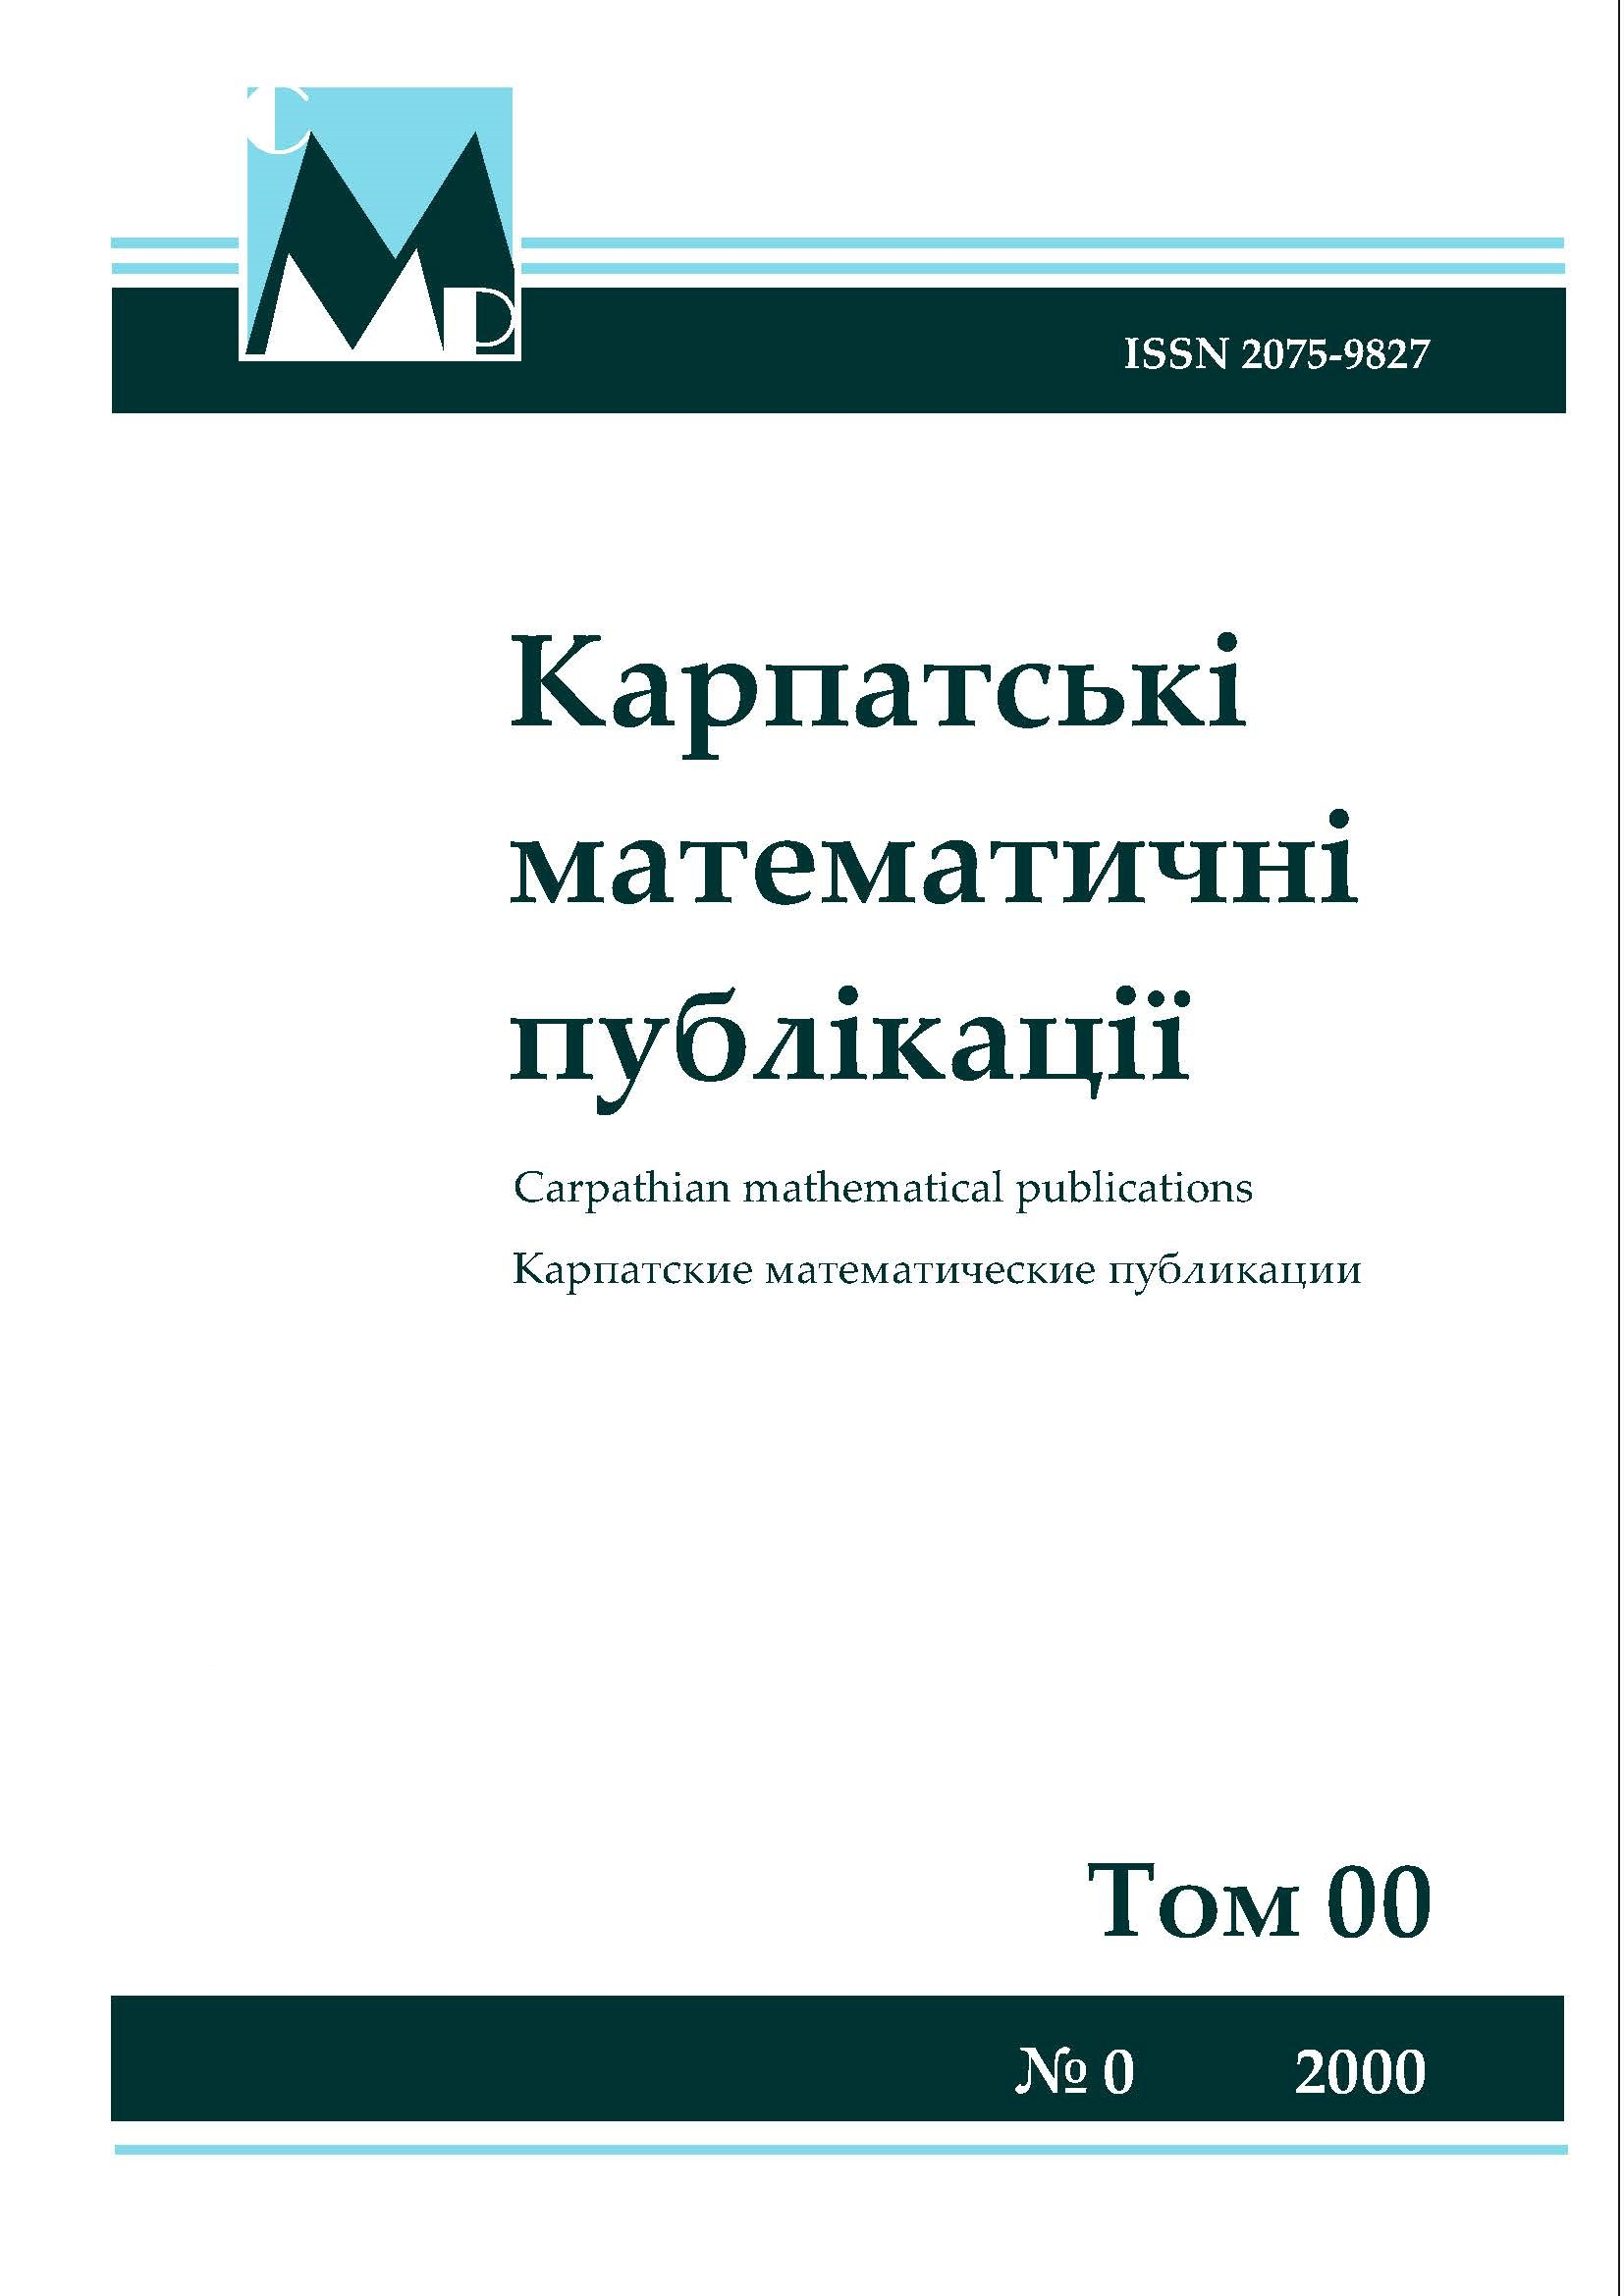 Carpathian Mathematical Publications